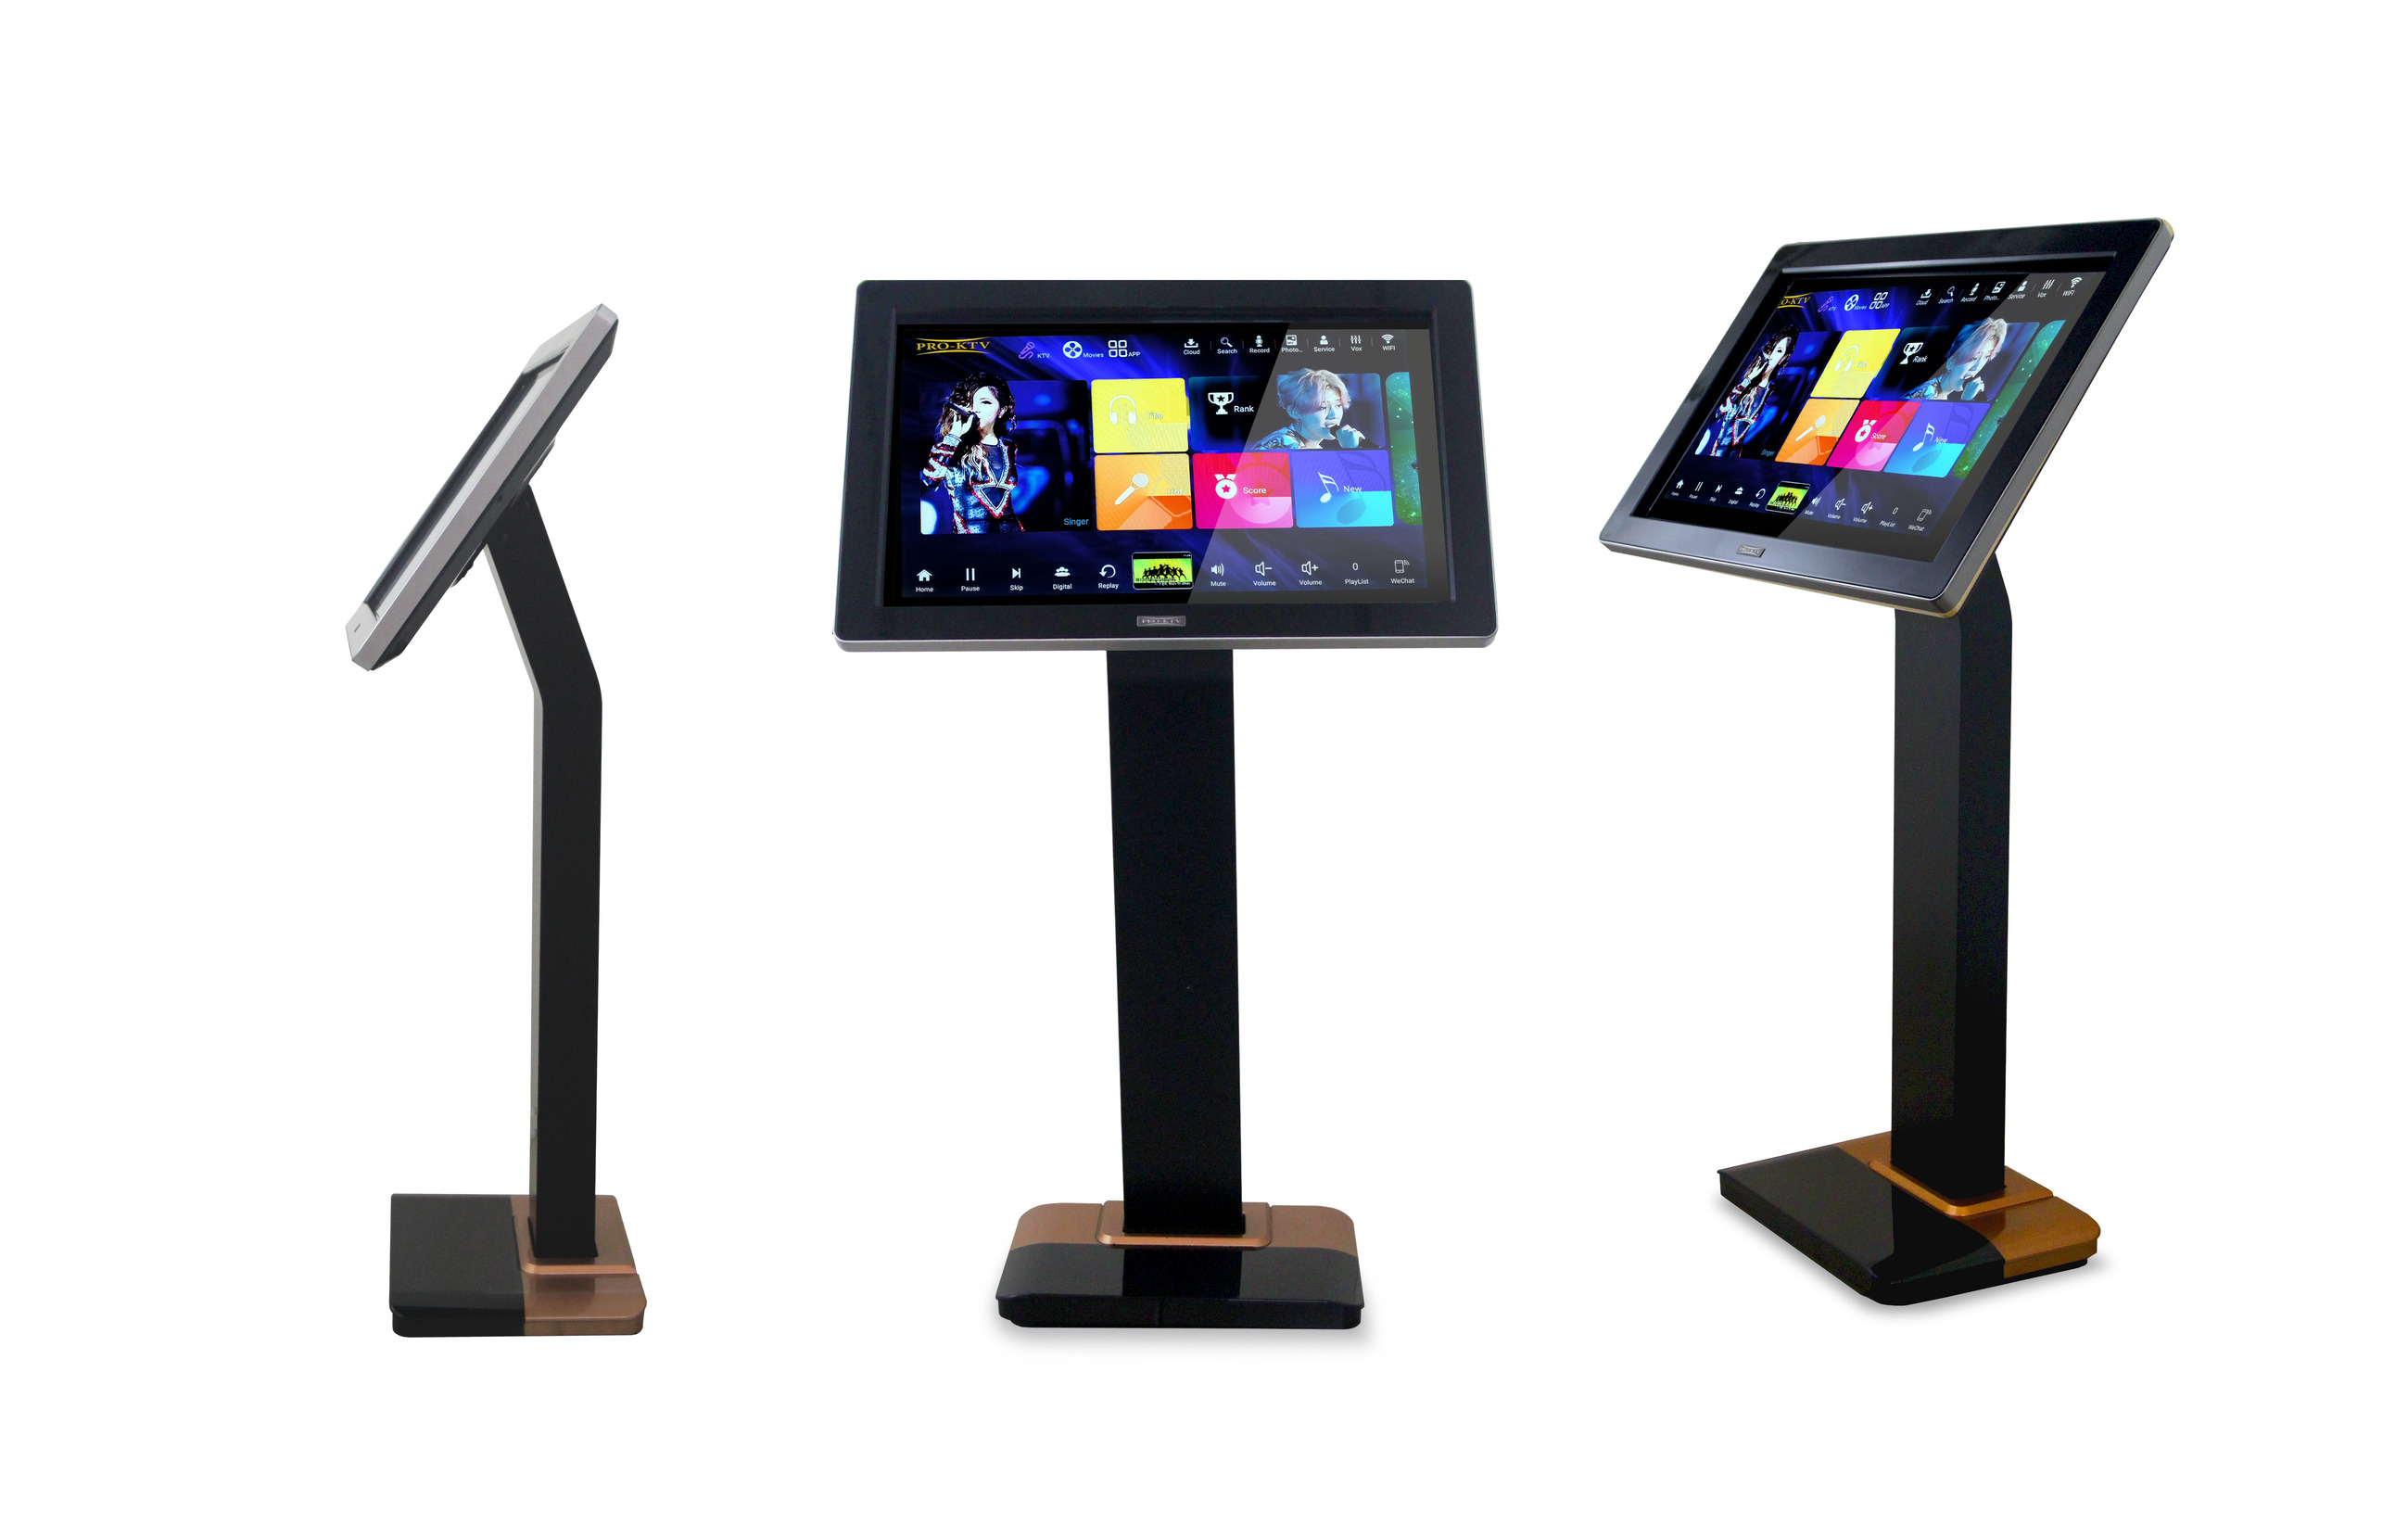 Pro Ktv 19' Touch Screen Monitor